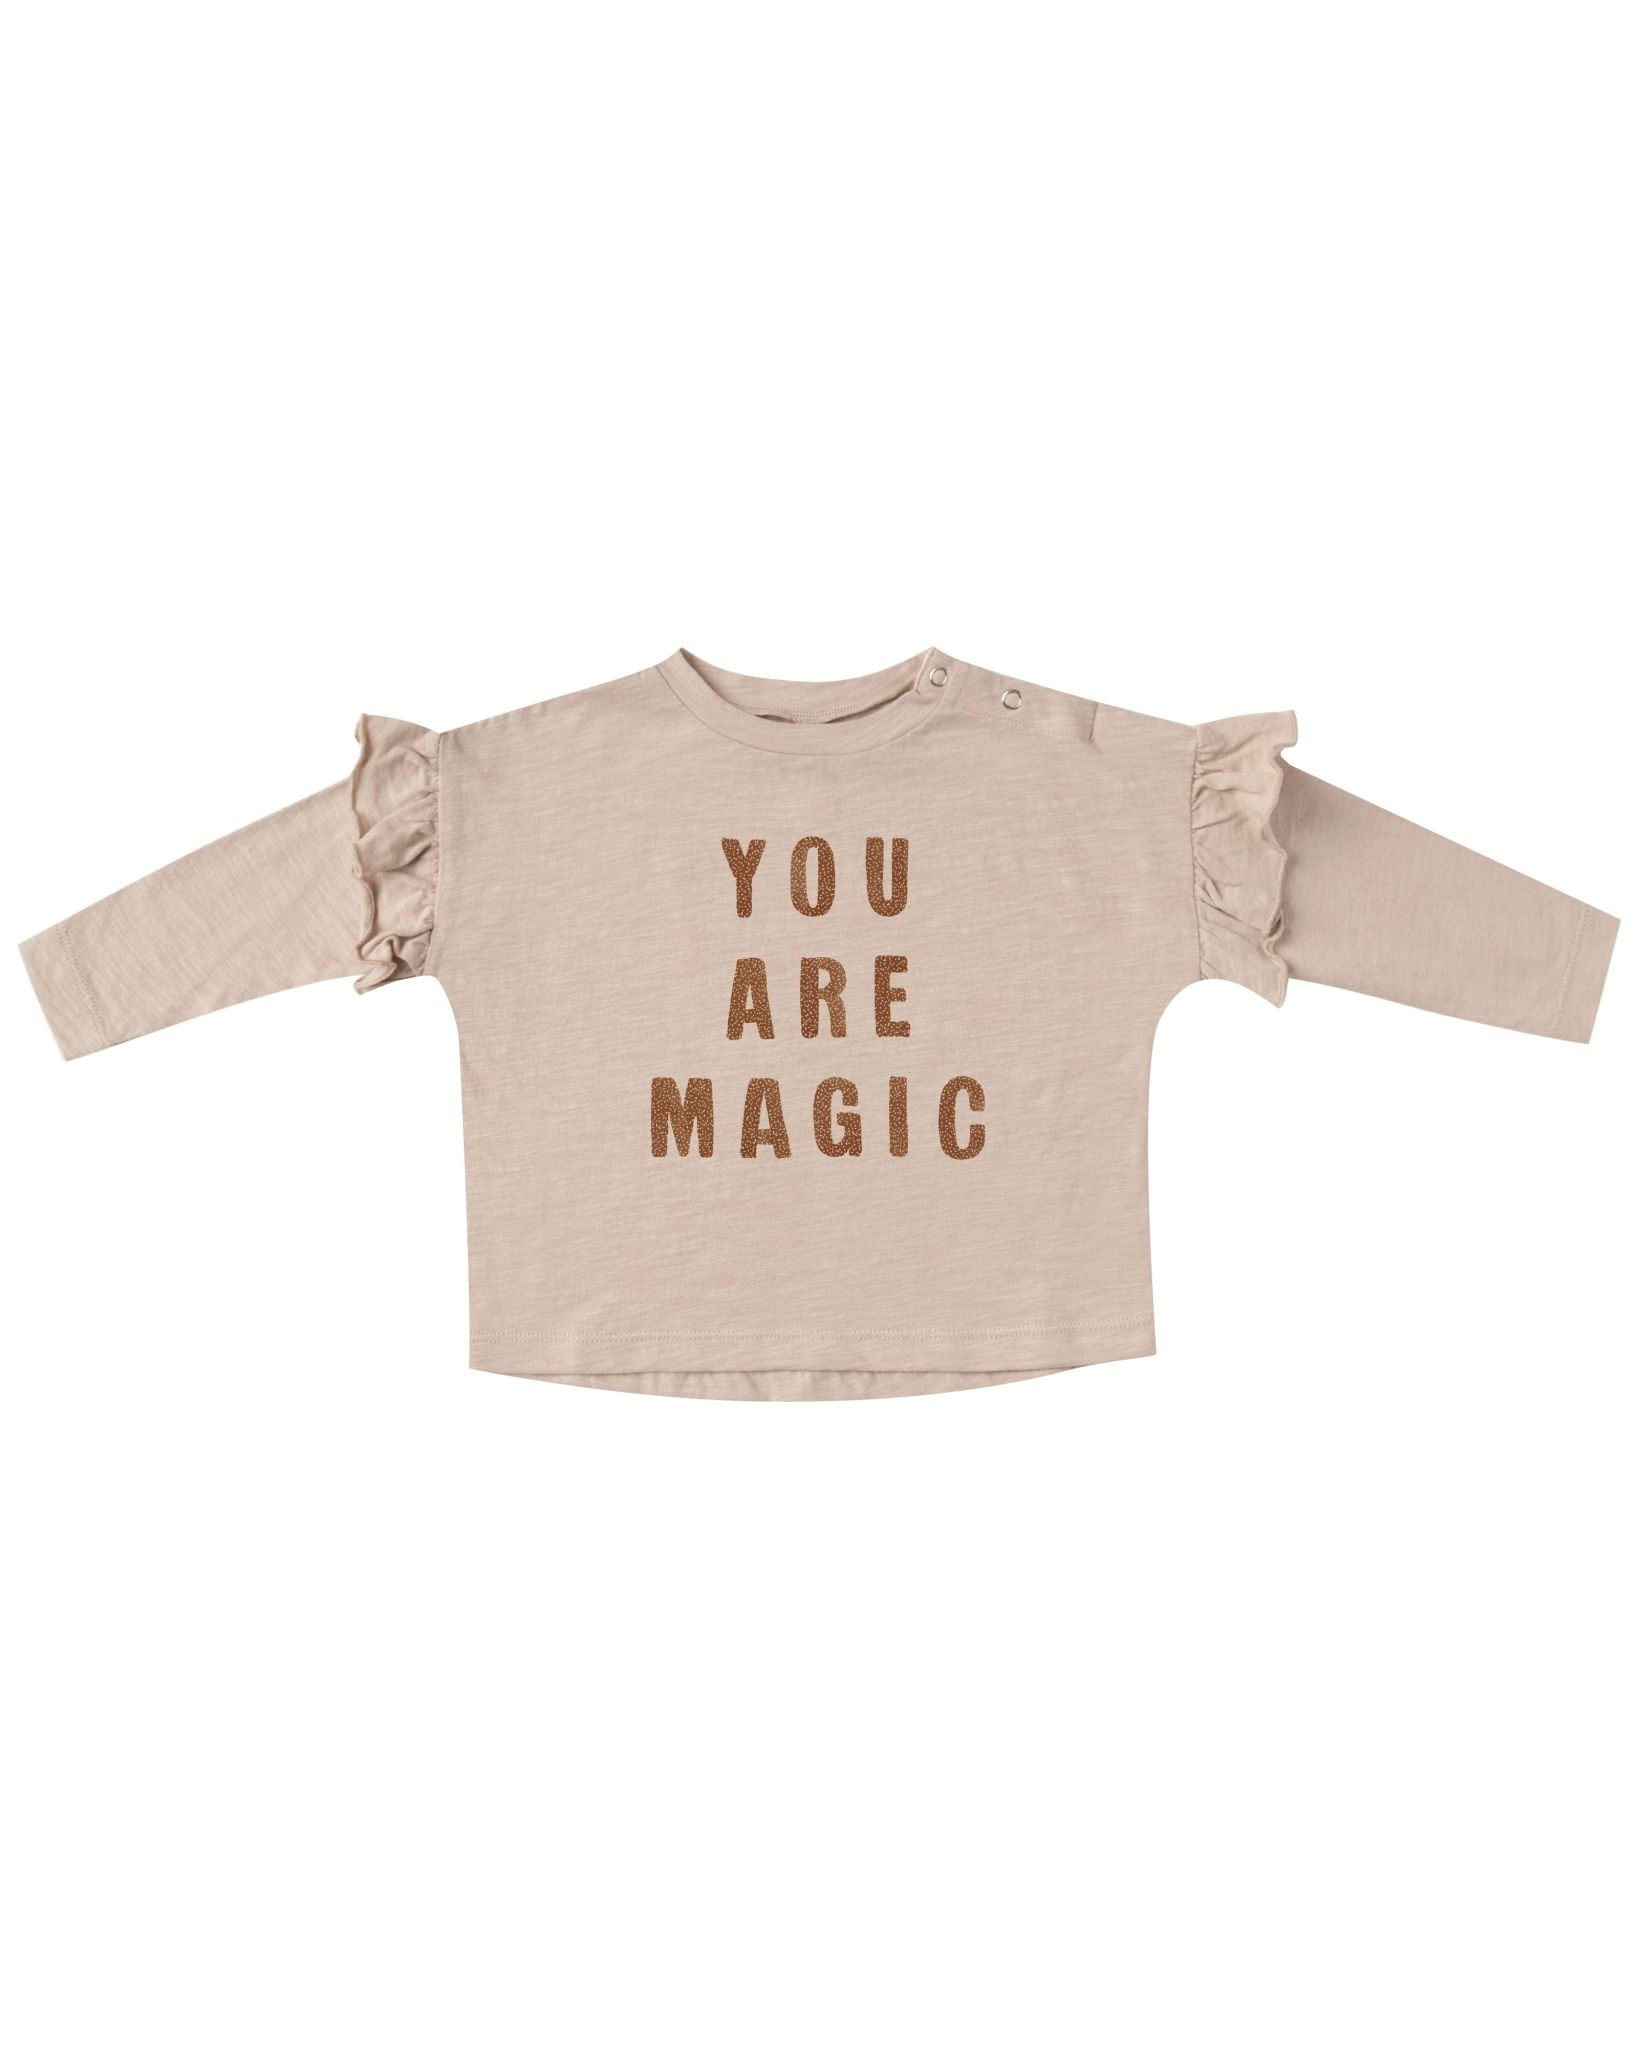 RYLEE AND CRU You Are Magic Baby Ruffle Tee